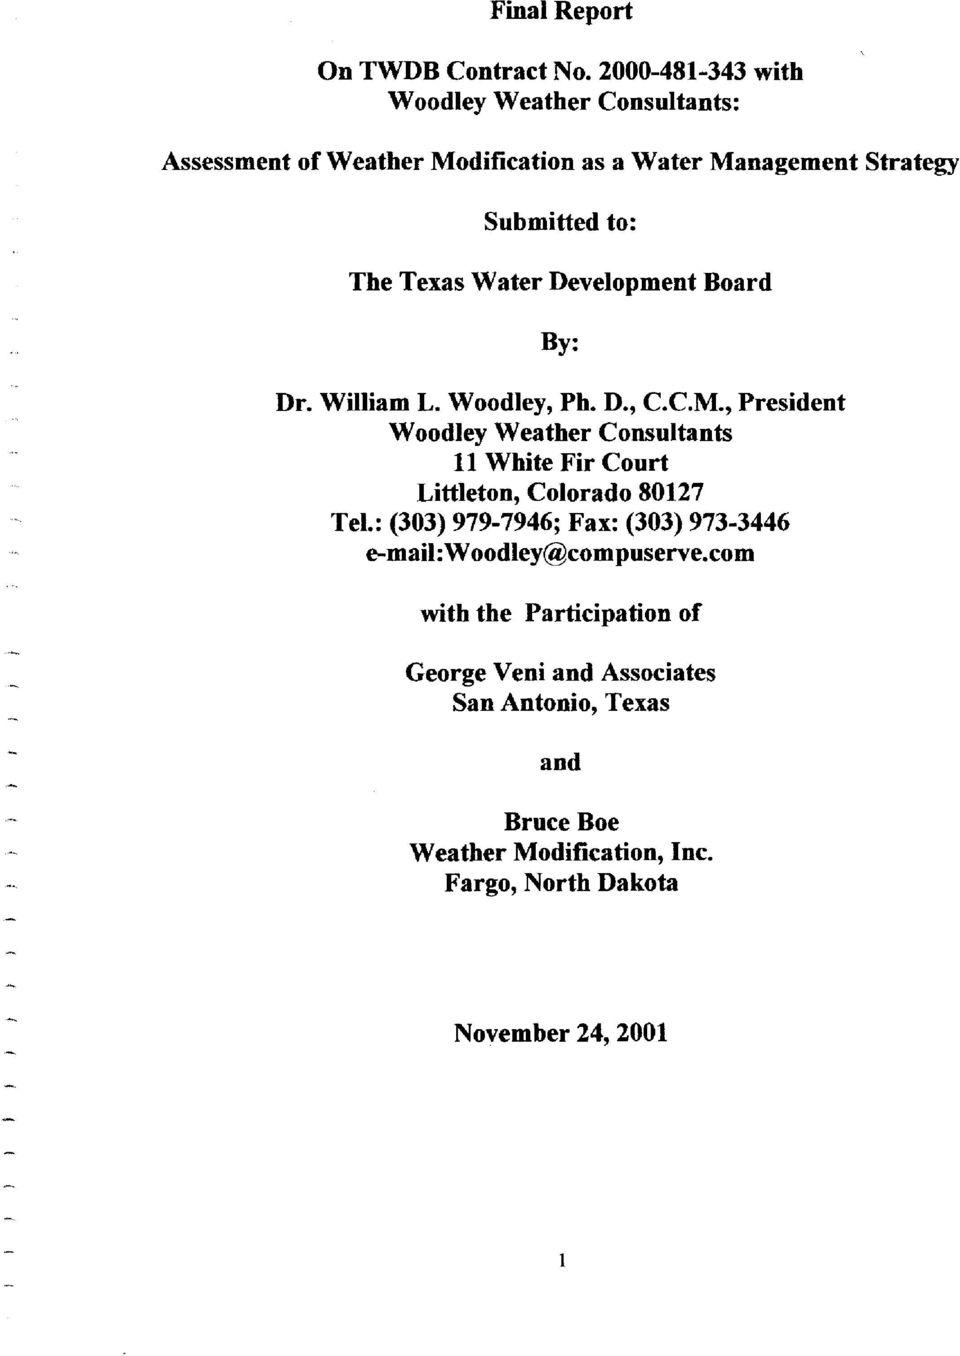 Water Development Board By: Dr. William L. Woodley, Ph. D., C.C.M.